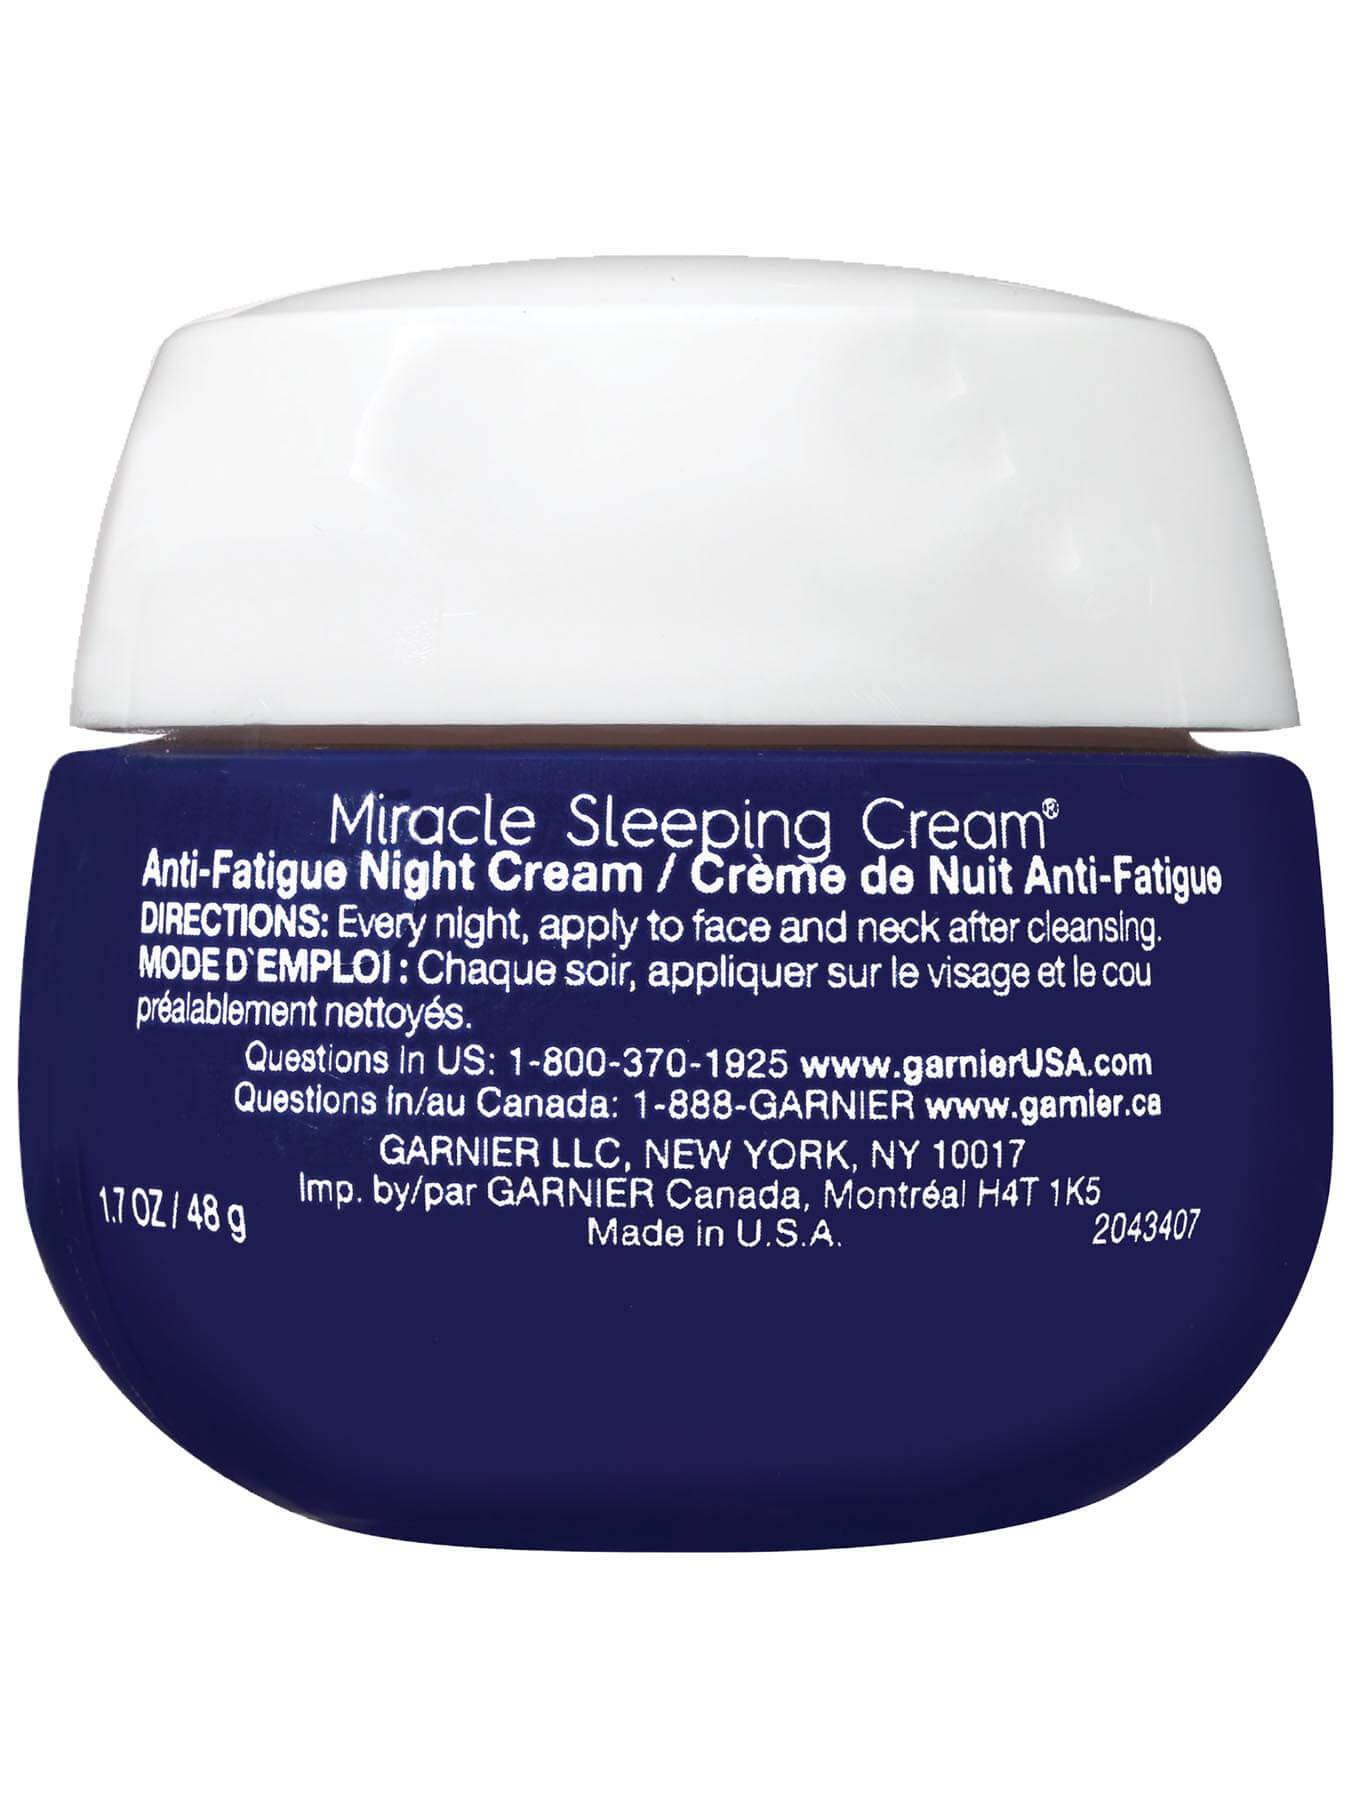 Back view of Ultra Lift Miracle Anti-Fatigue Sleeping Cream.